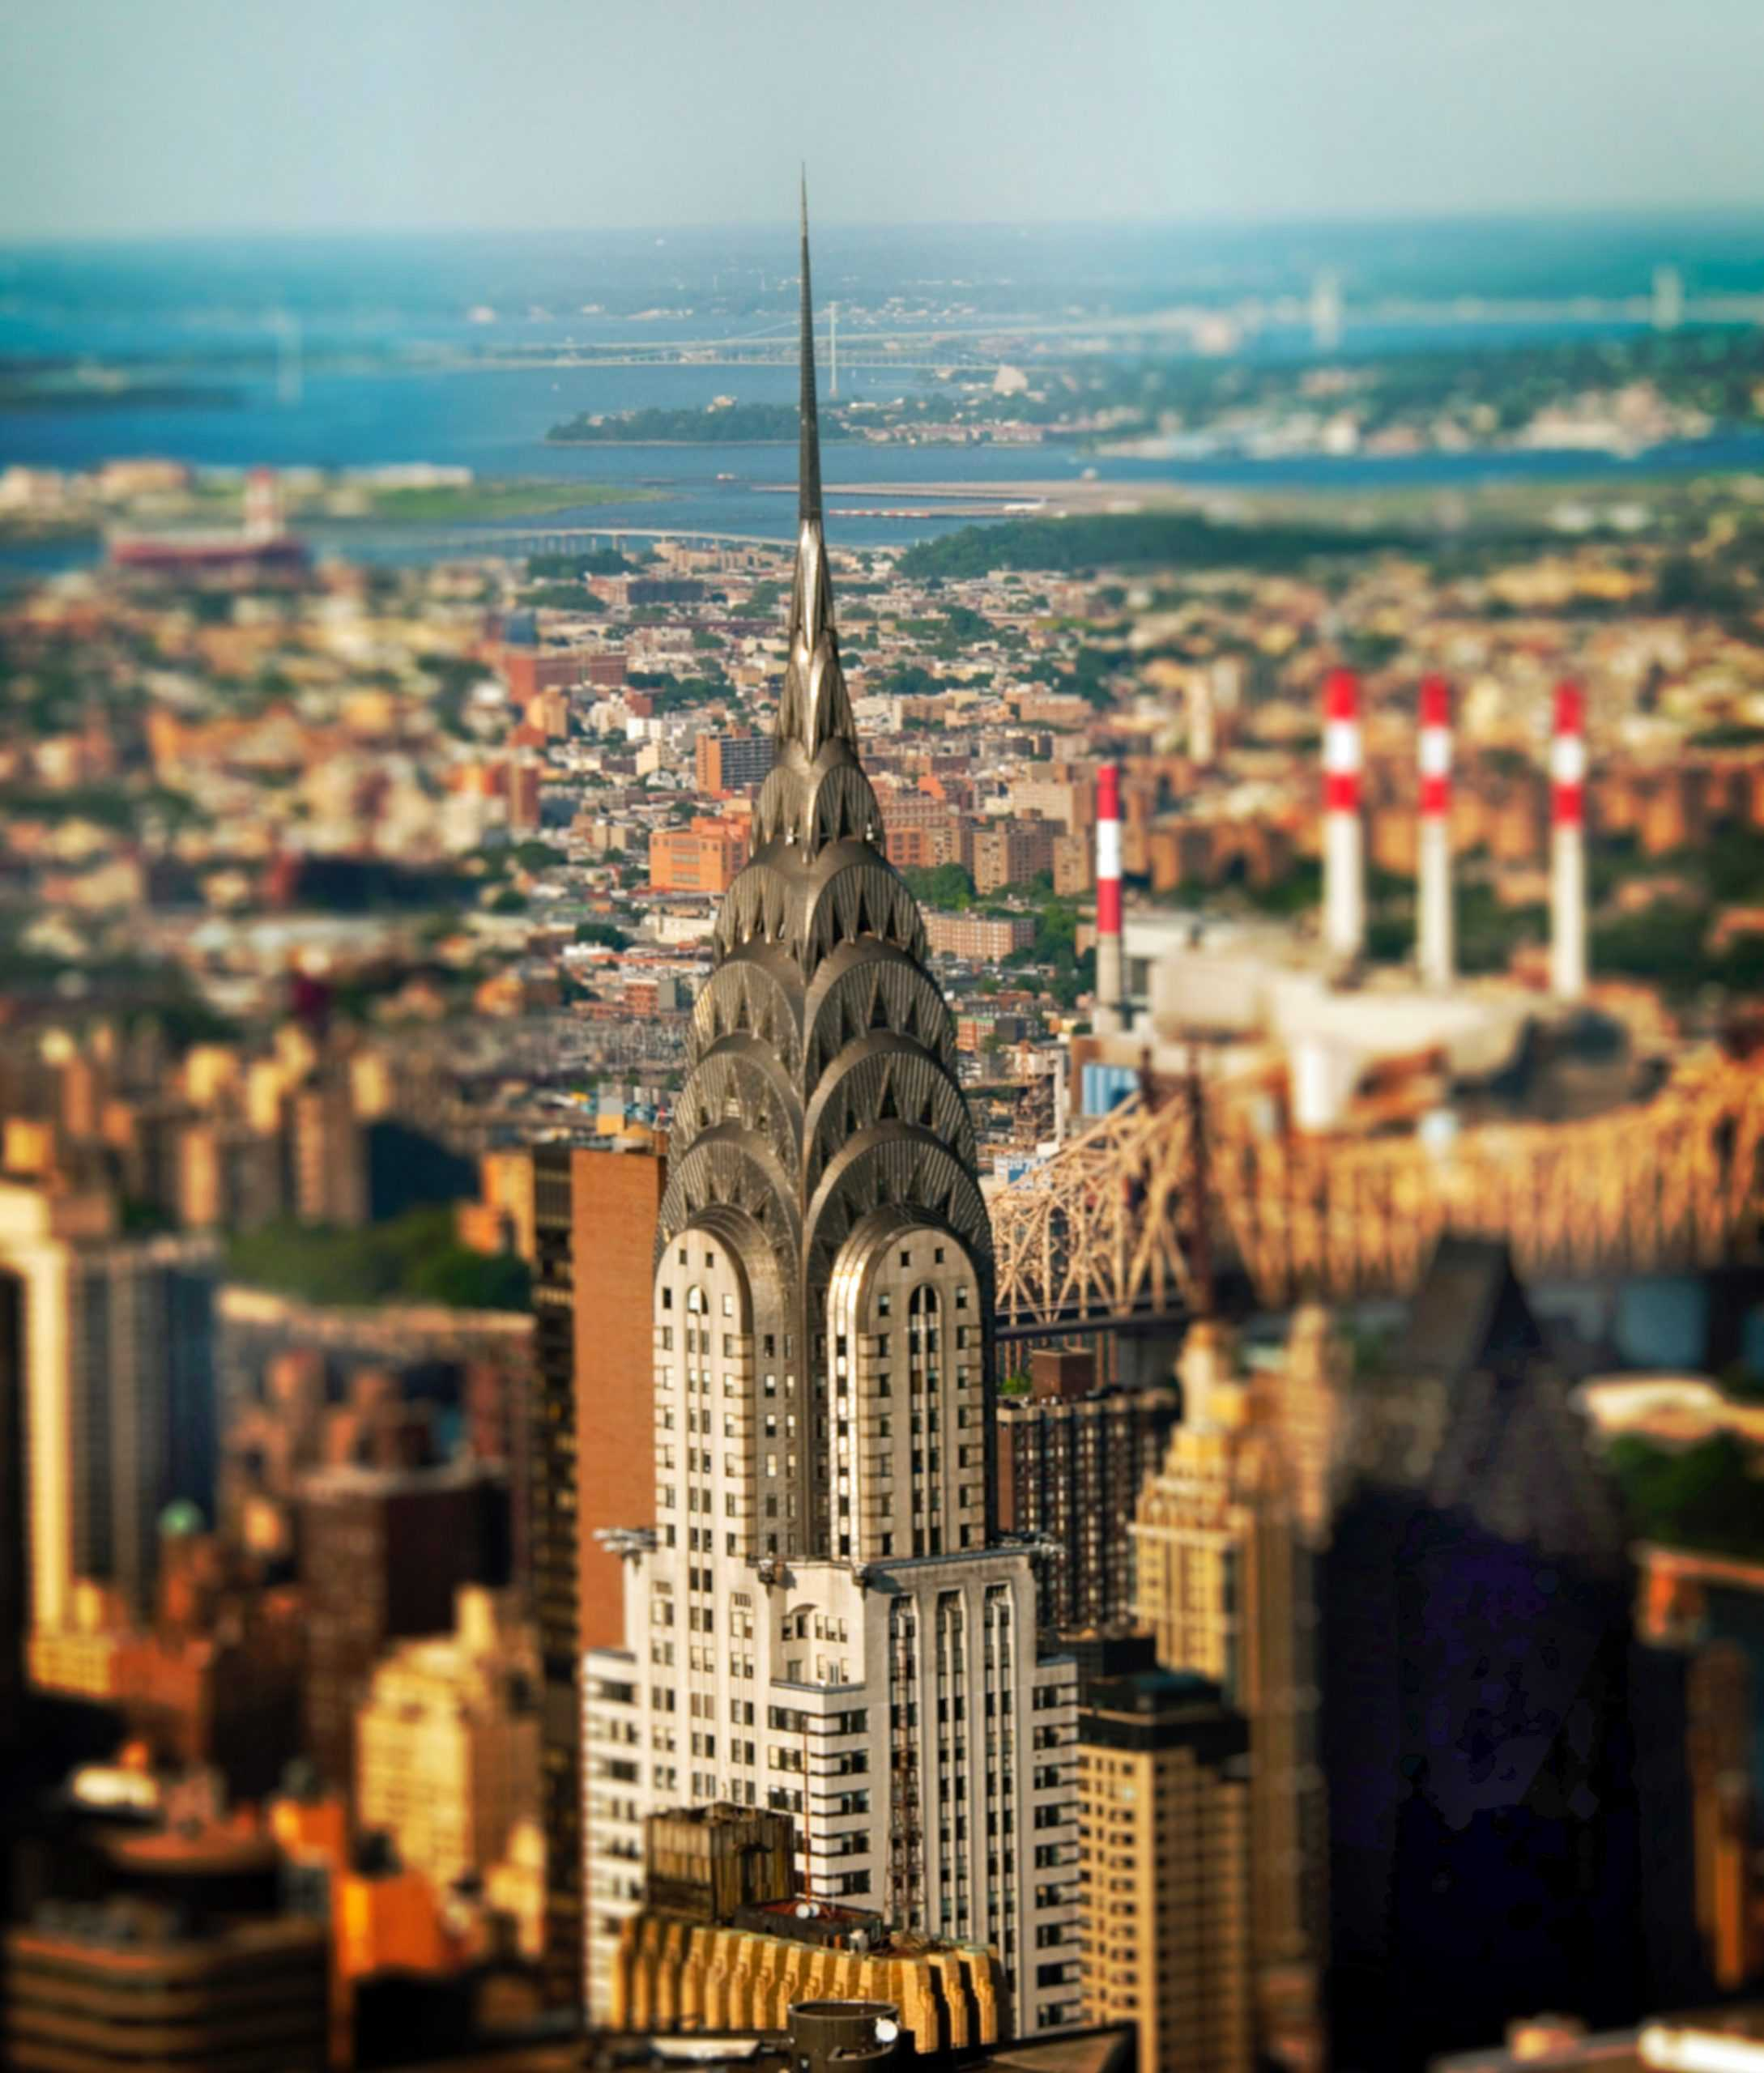 Tall building with spire